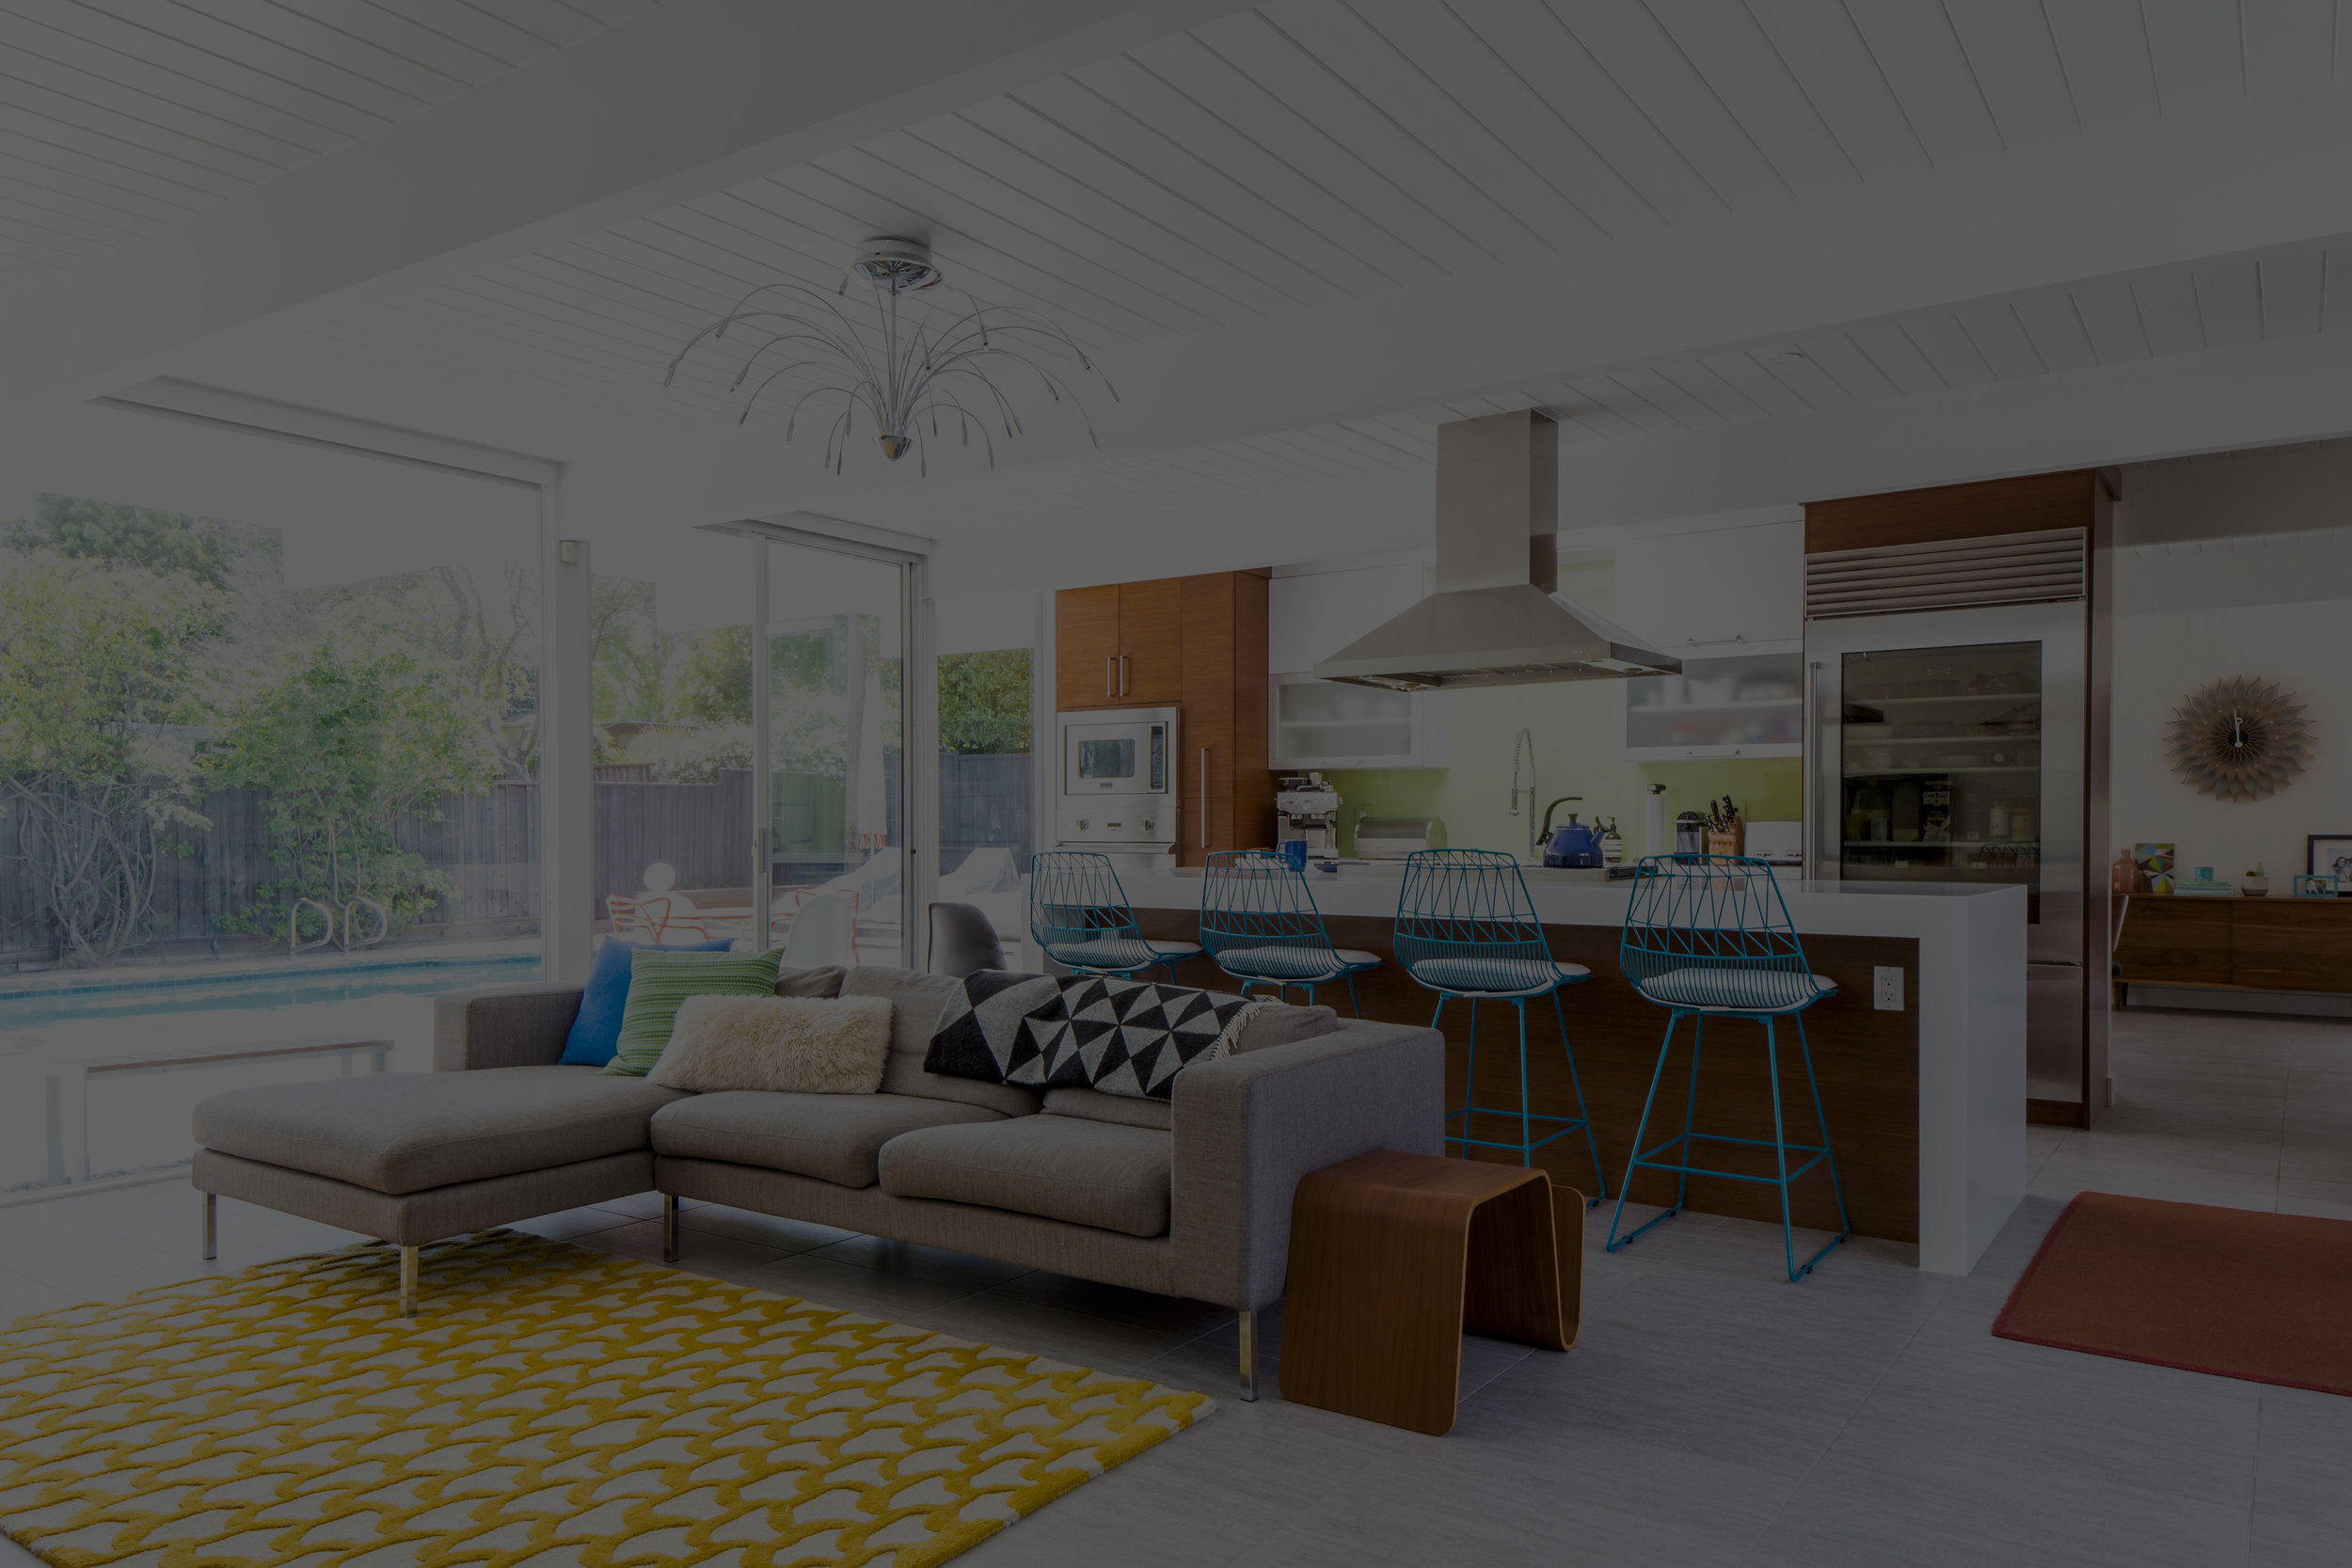 Dwell - An Interior Designer Launches Her Career by Renovating Her Family's Midcentury Eichler